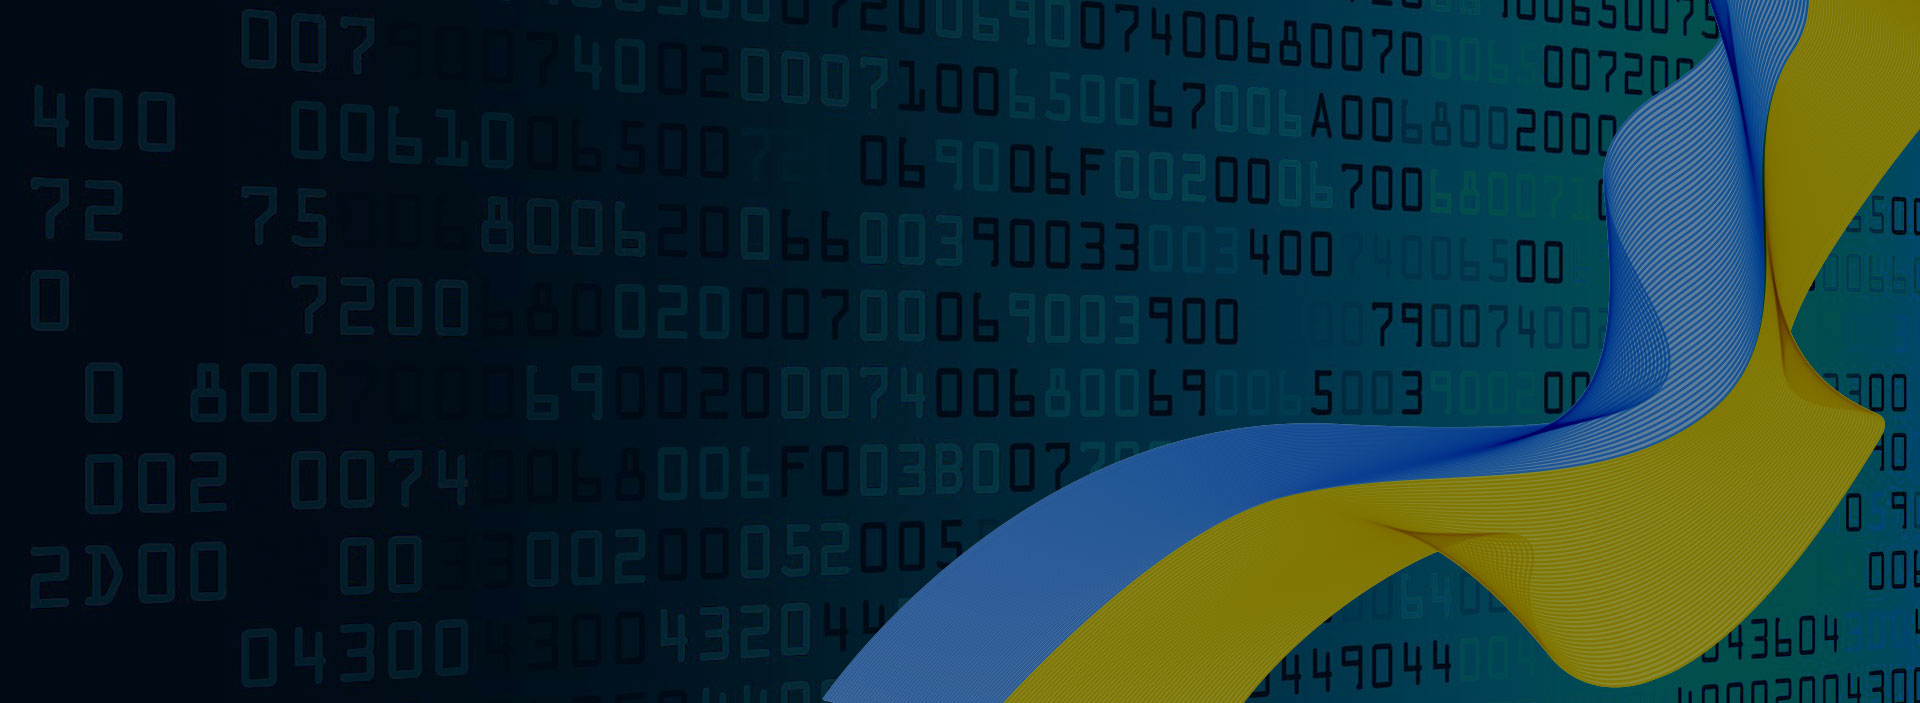 Is Ukraine safe for software development offshoring? – Part One – Data protection and information security